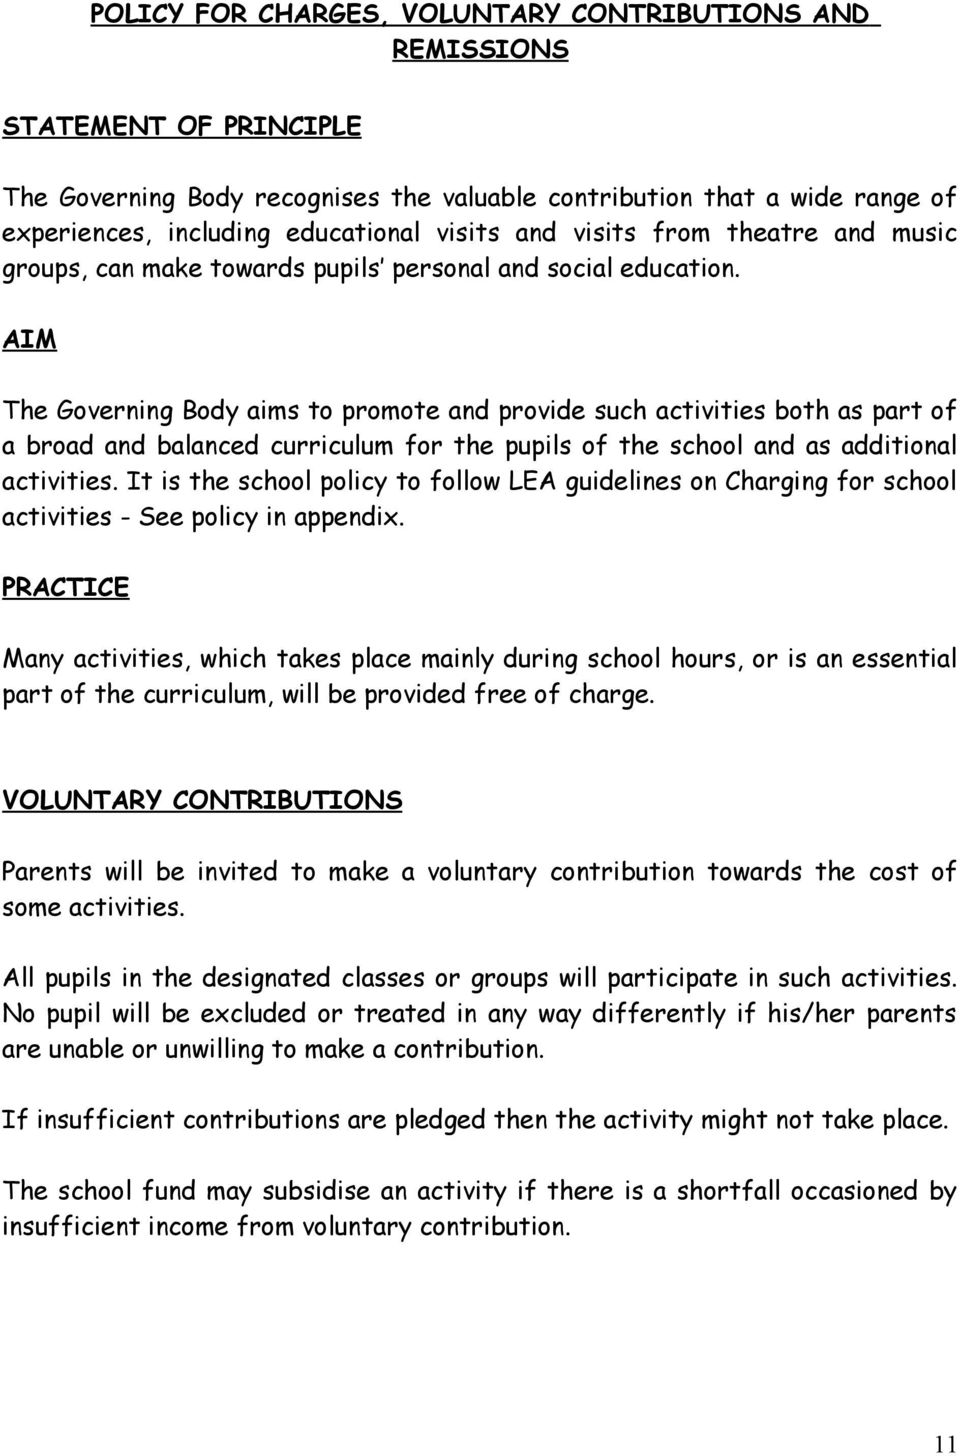 AIM The Governing Body aims to promote and provide such activities both as part of a broad and balanced curriculum for the pupils of the school and as additional activities.